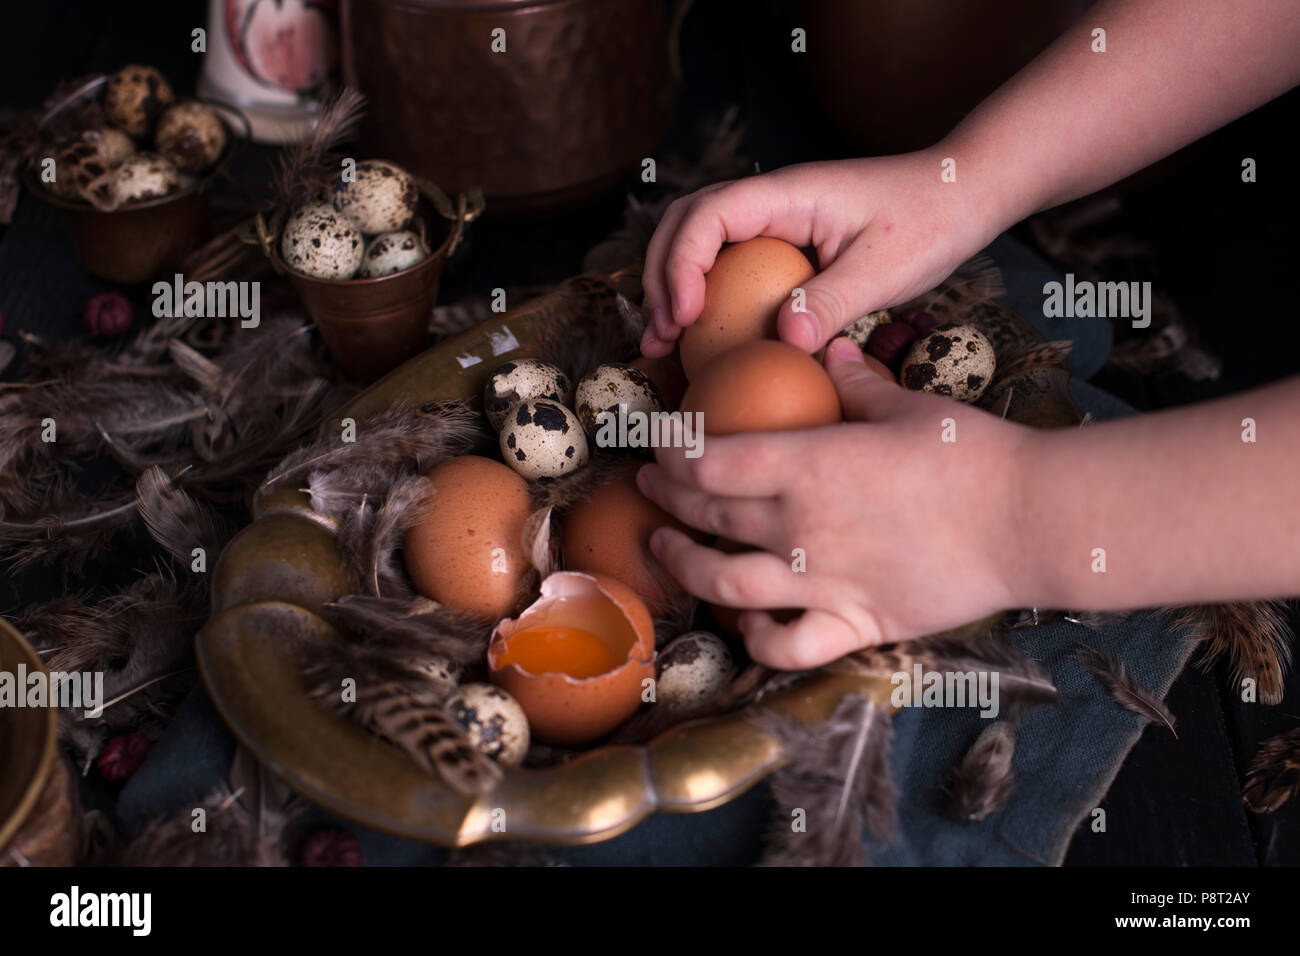 Childrens Hands In The Frame Easter Eggs Large And Small Feathers